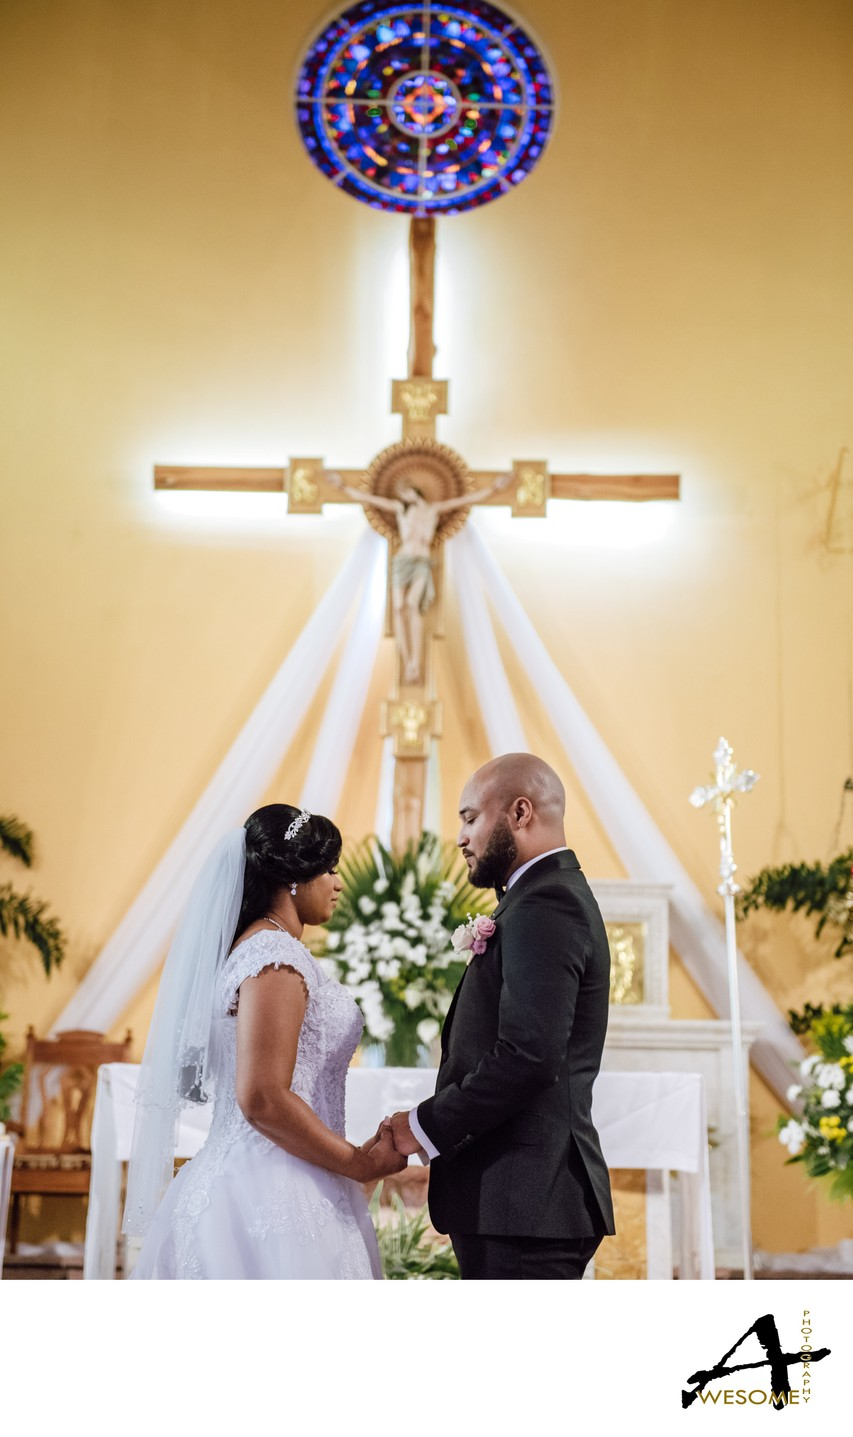 Church Wedding, San Fernando, Trinidad.